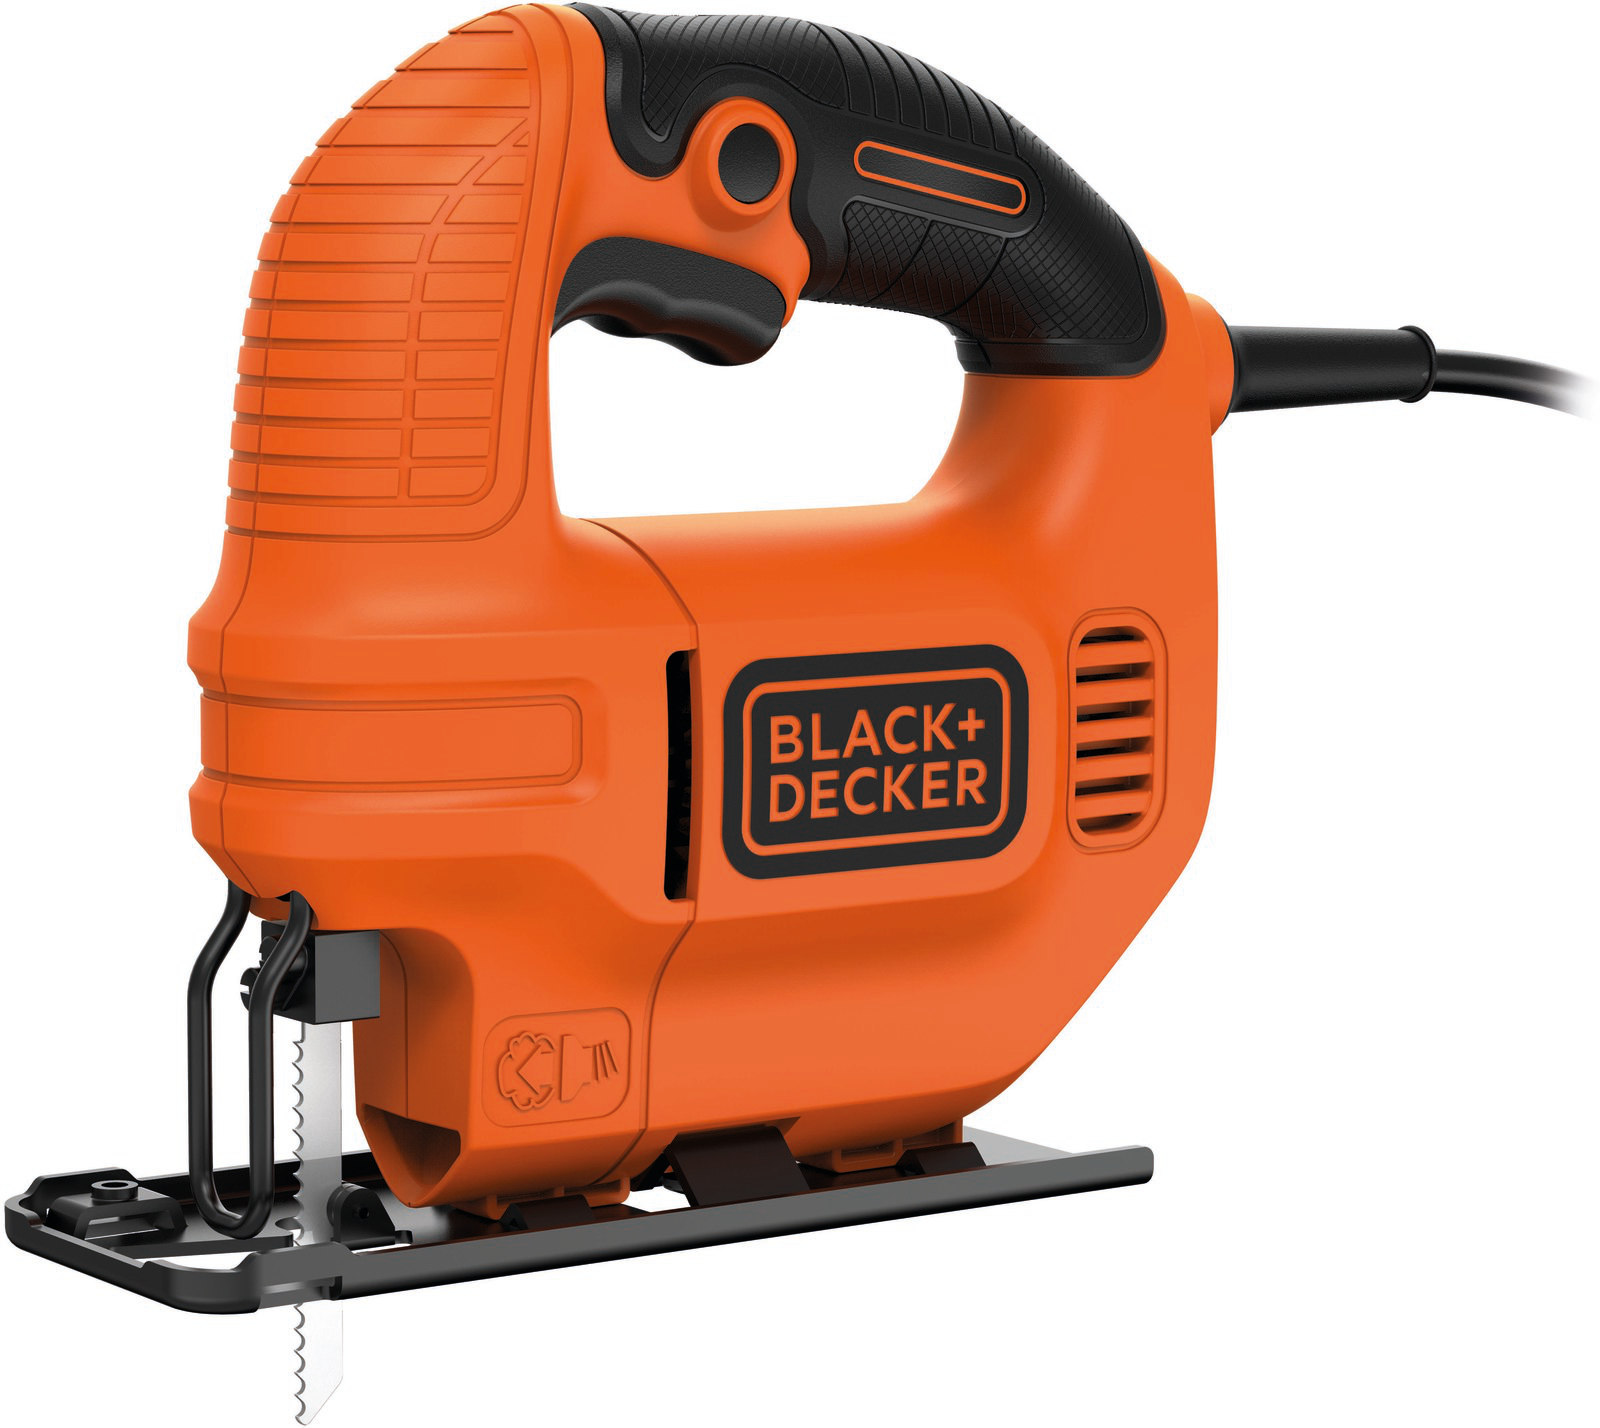 Pistosaha BLACK+DECKER KS501 400 W